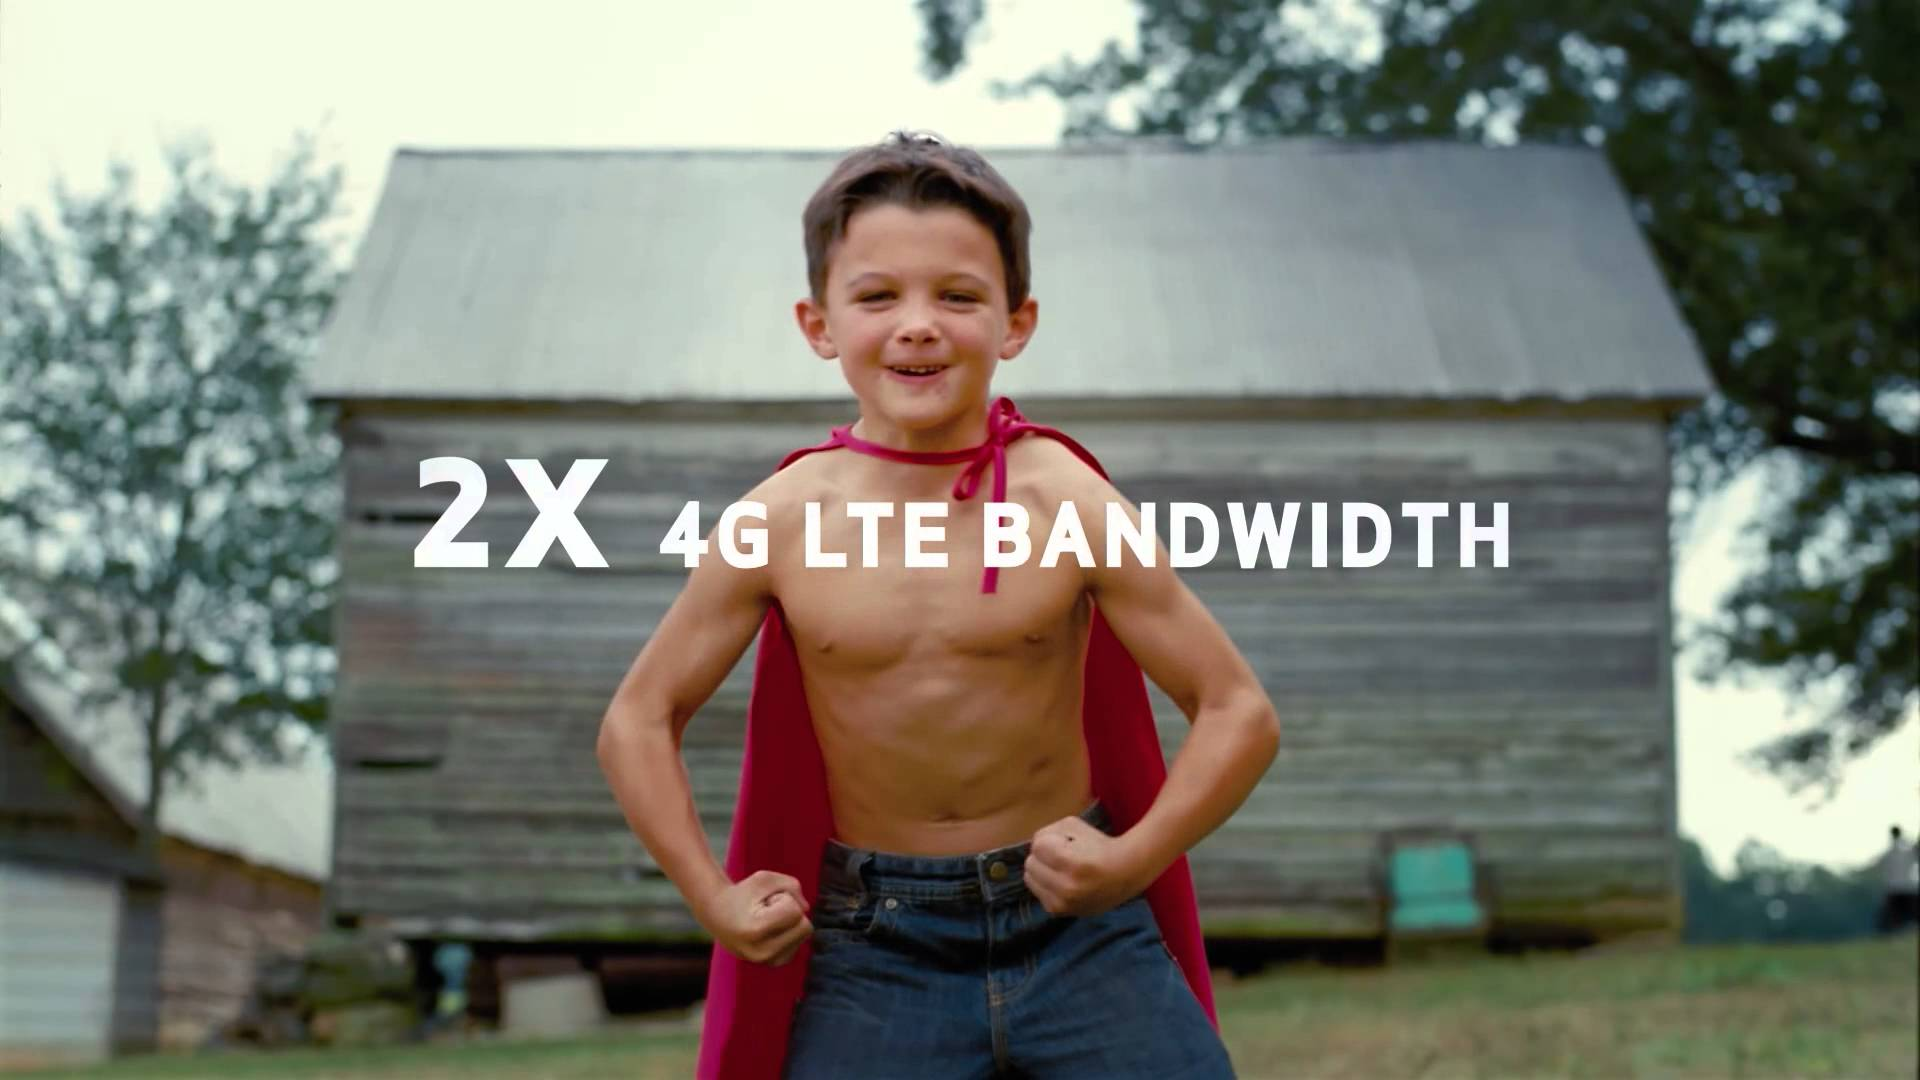 XLTE | Intoduction | Verizon Wireless